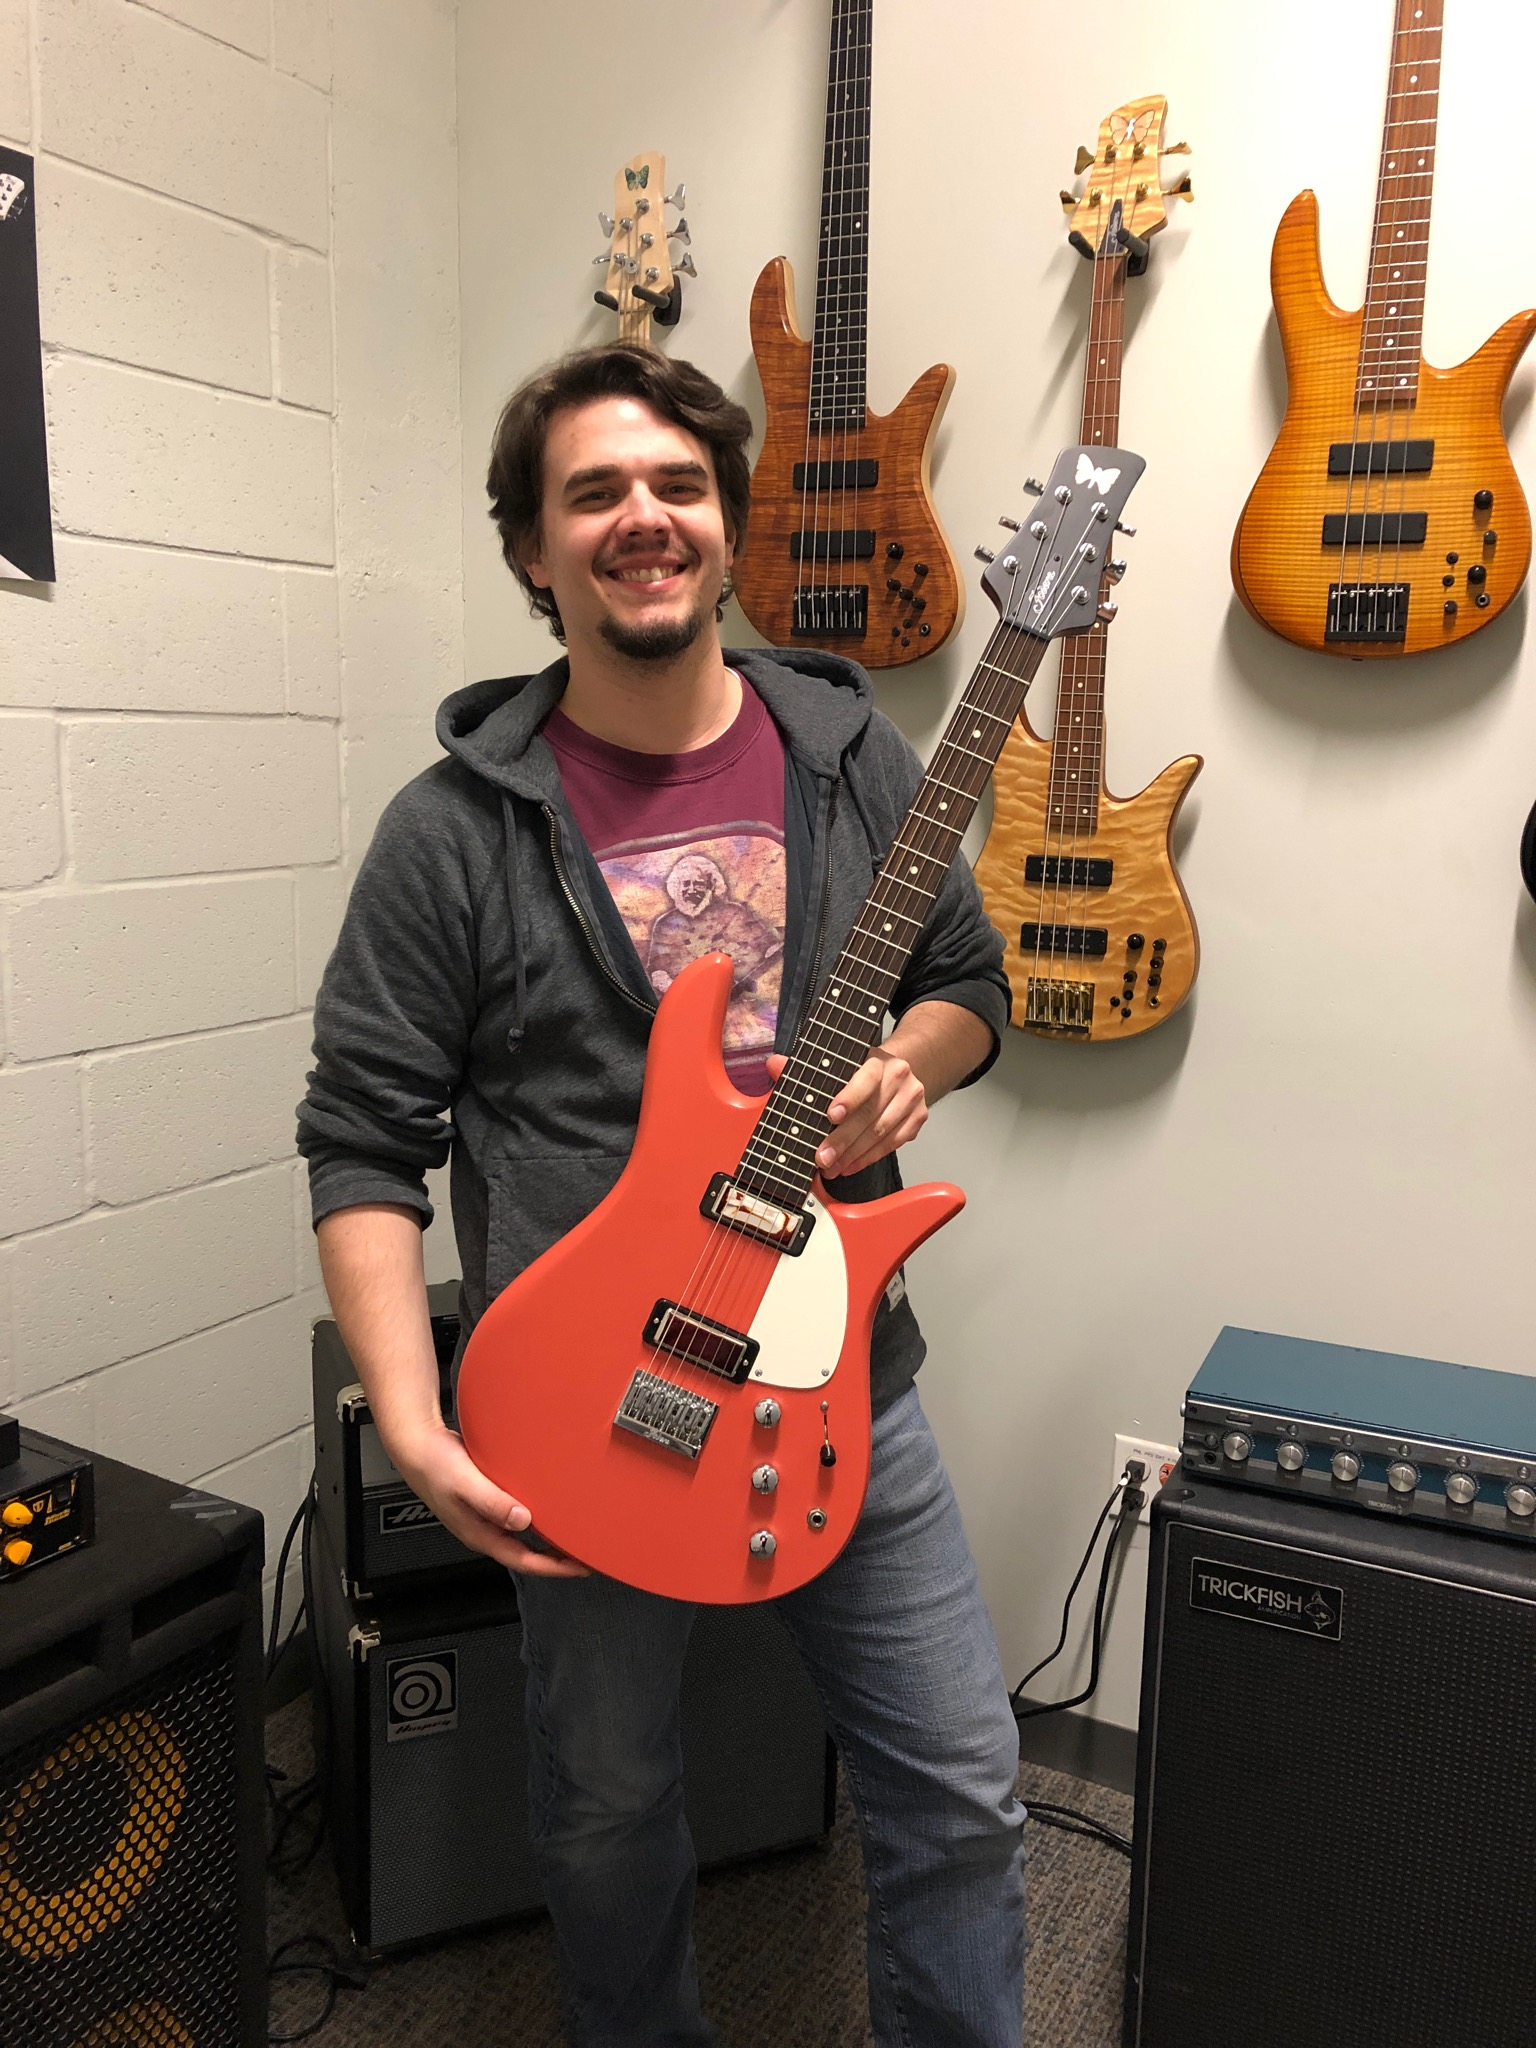 Yours truly with the newest Monarch Guitar prototype in Tahitian Coral with a parchment pickguard. Currently, the guitar has Fodera/Fralin BigSingle pickups.